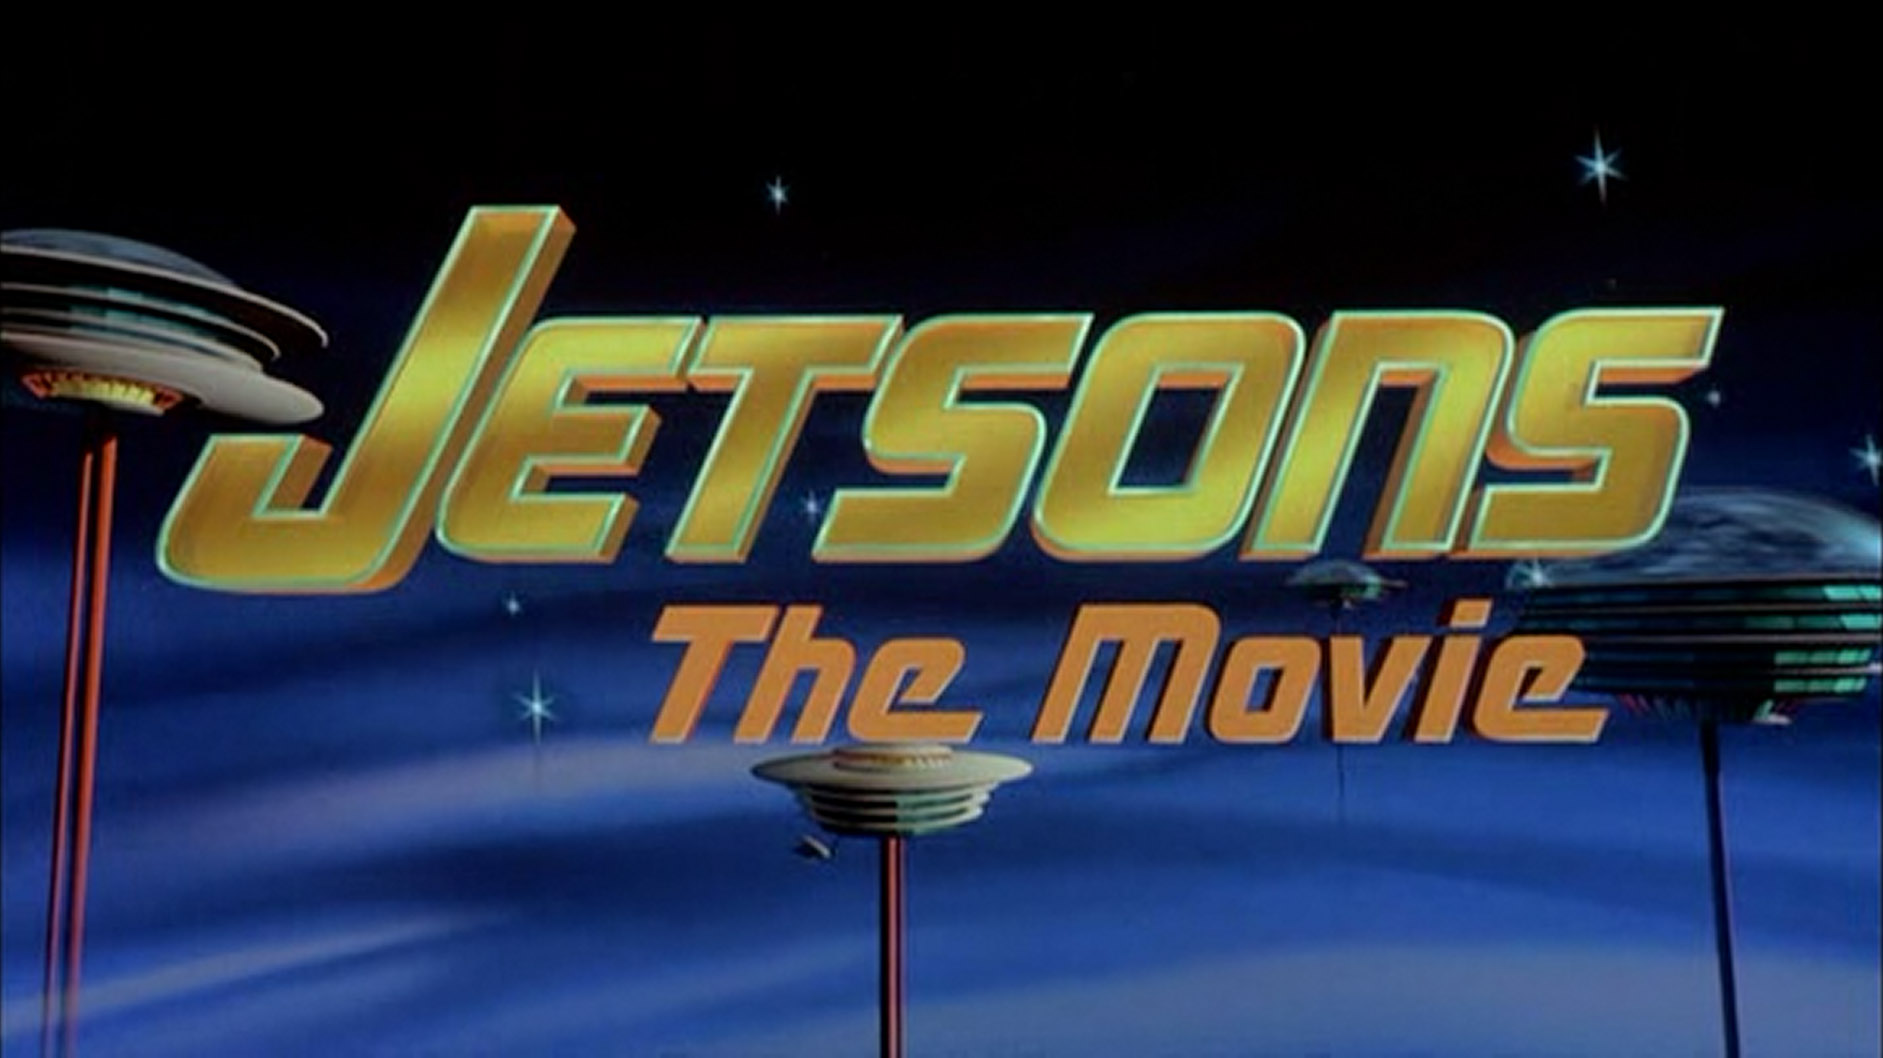 Jetsons The Movie The Jetsons Wiki Fandom